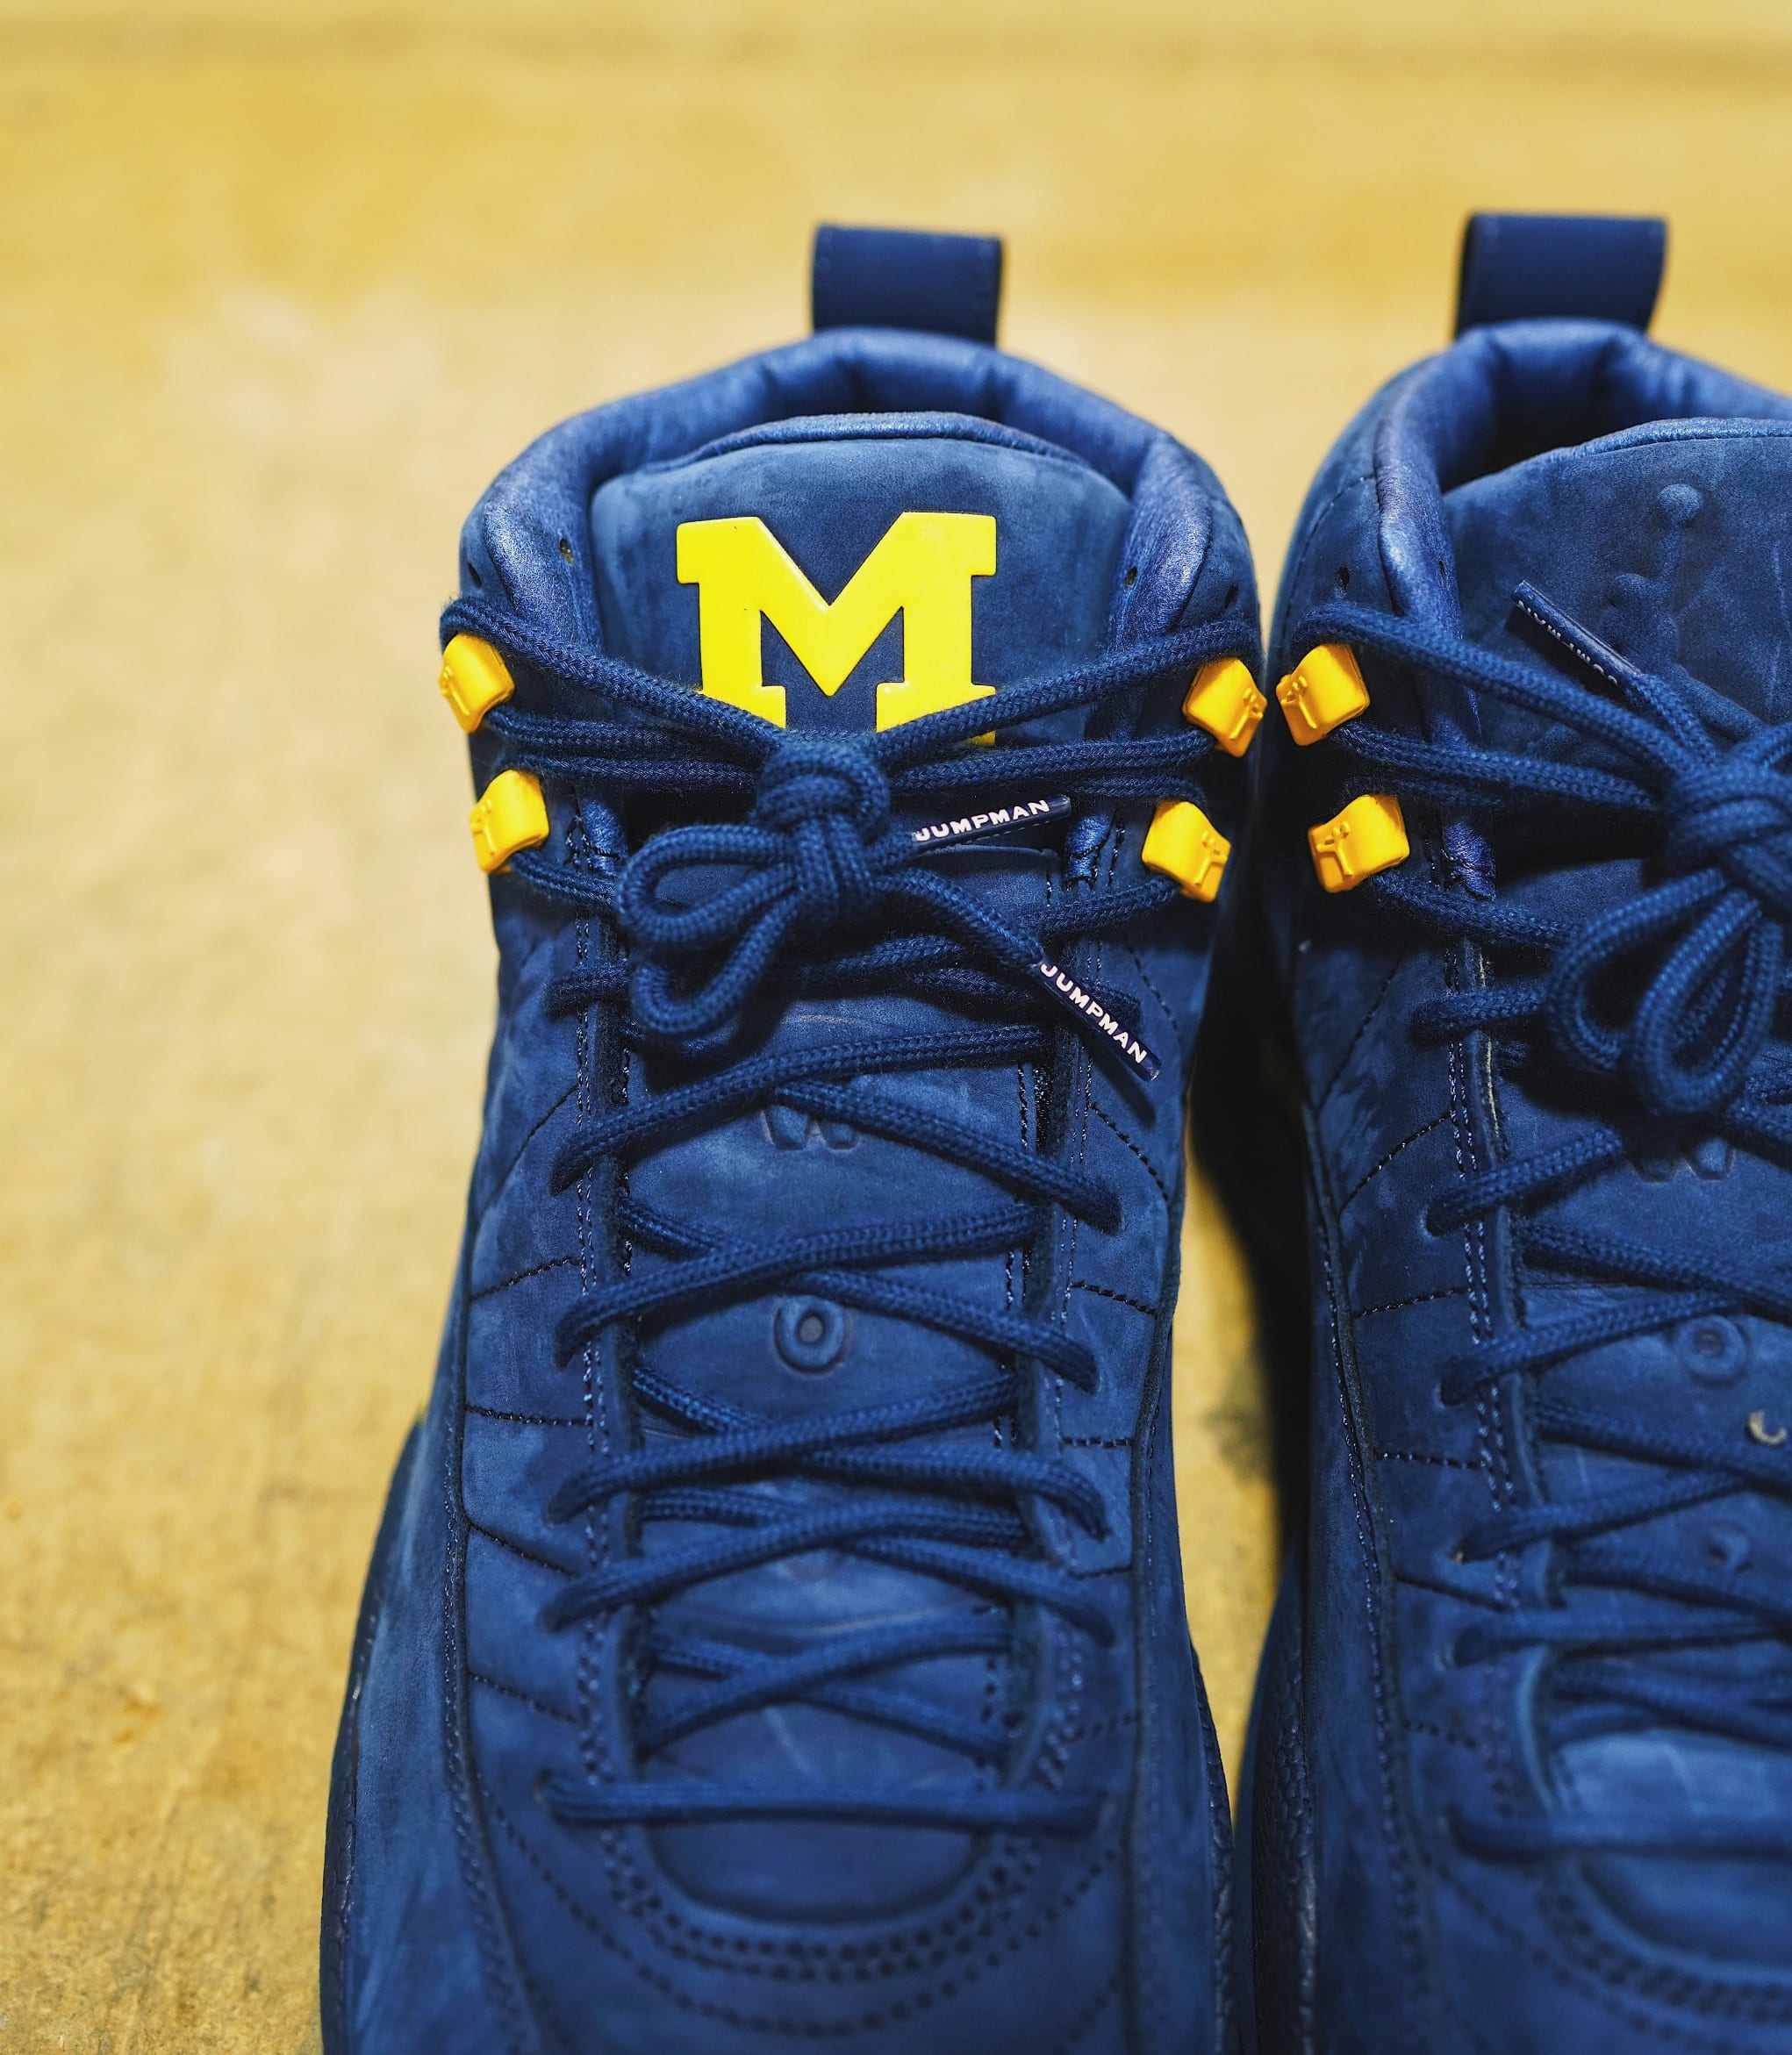 Air Jordan 12 'Michigan' BQ3180-407 (Tongue Pair)